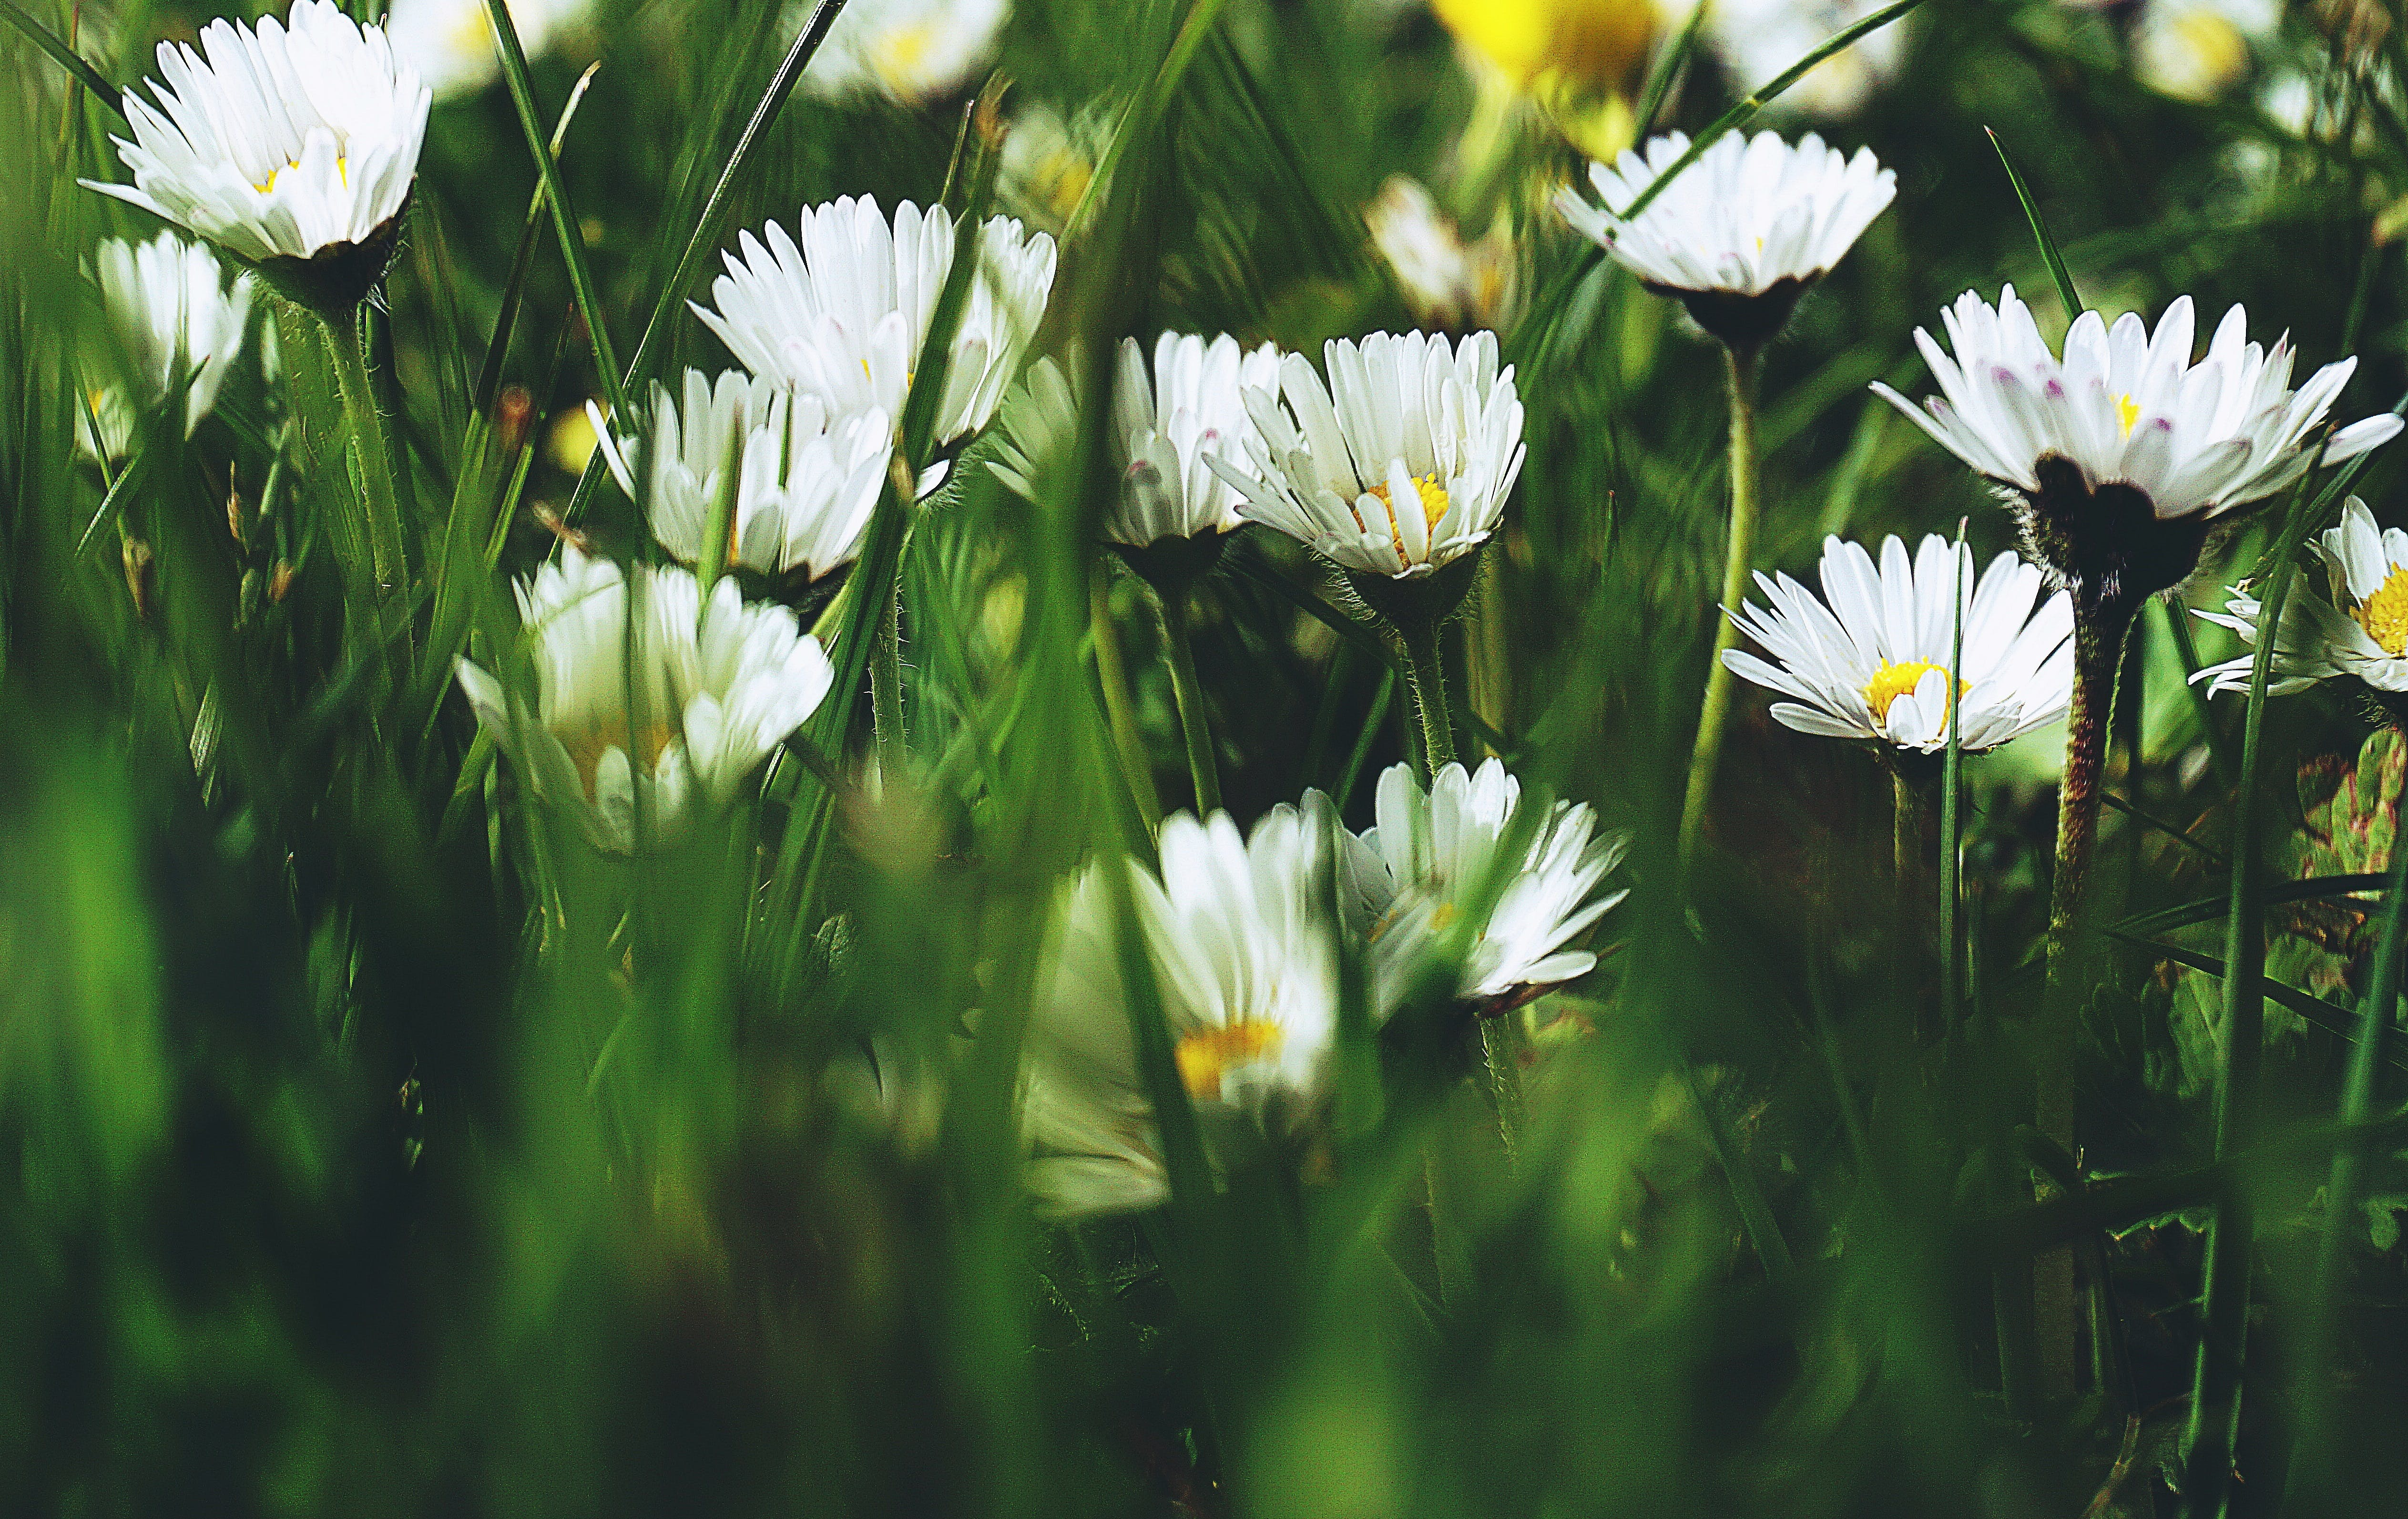 Free stock photo of close-up, daisies, flowers, grass